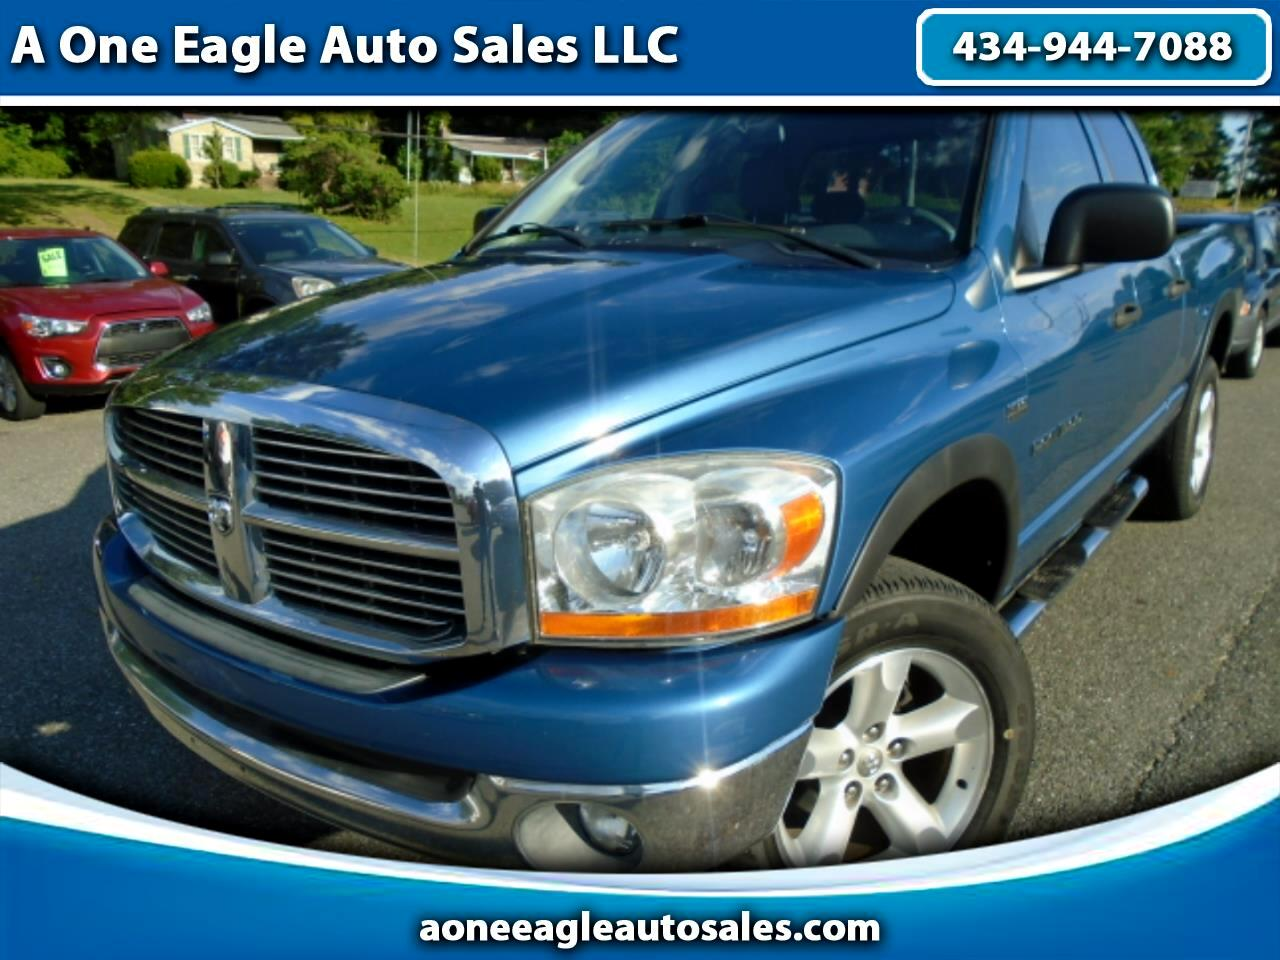 Dodge Ram 1500 SLT Quad Cab Long Bed 4WD 2006